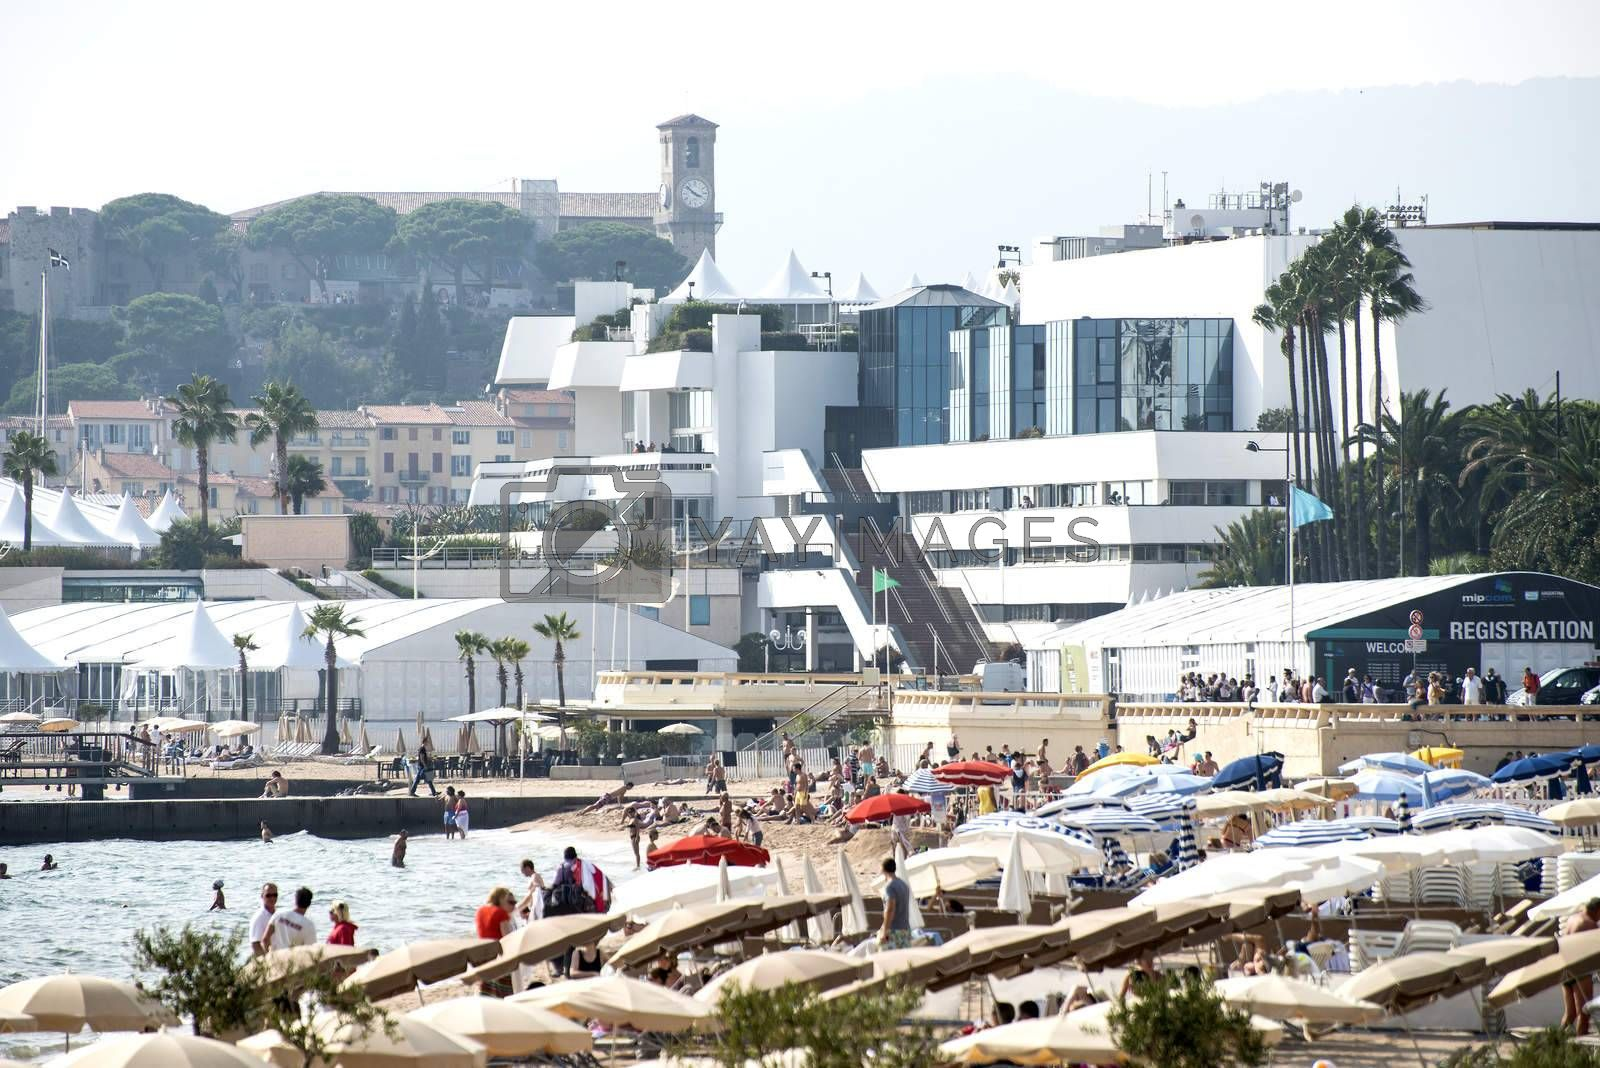 Cannes film festival palace, France.